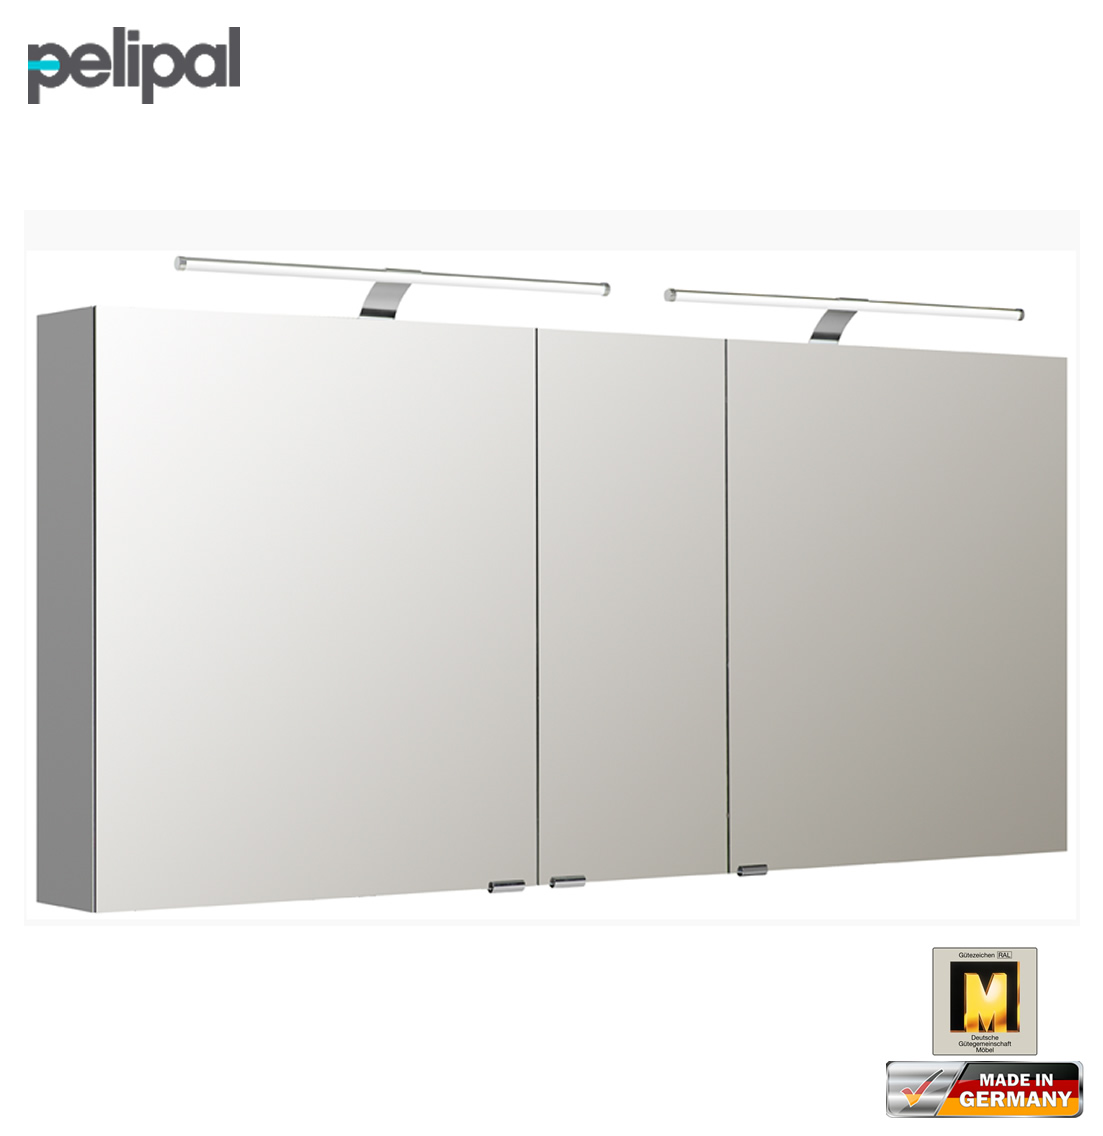 pelipal neutraler spiegelschrank 150 cm mit led. Black Bedroom Furniture Sets. Home Design Ideas